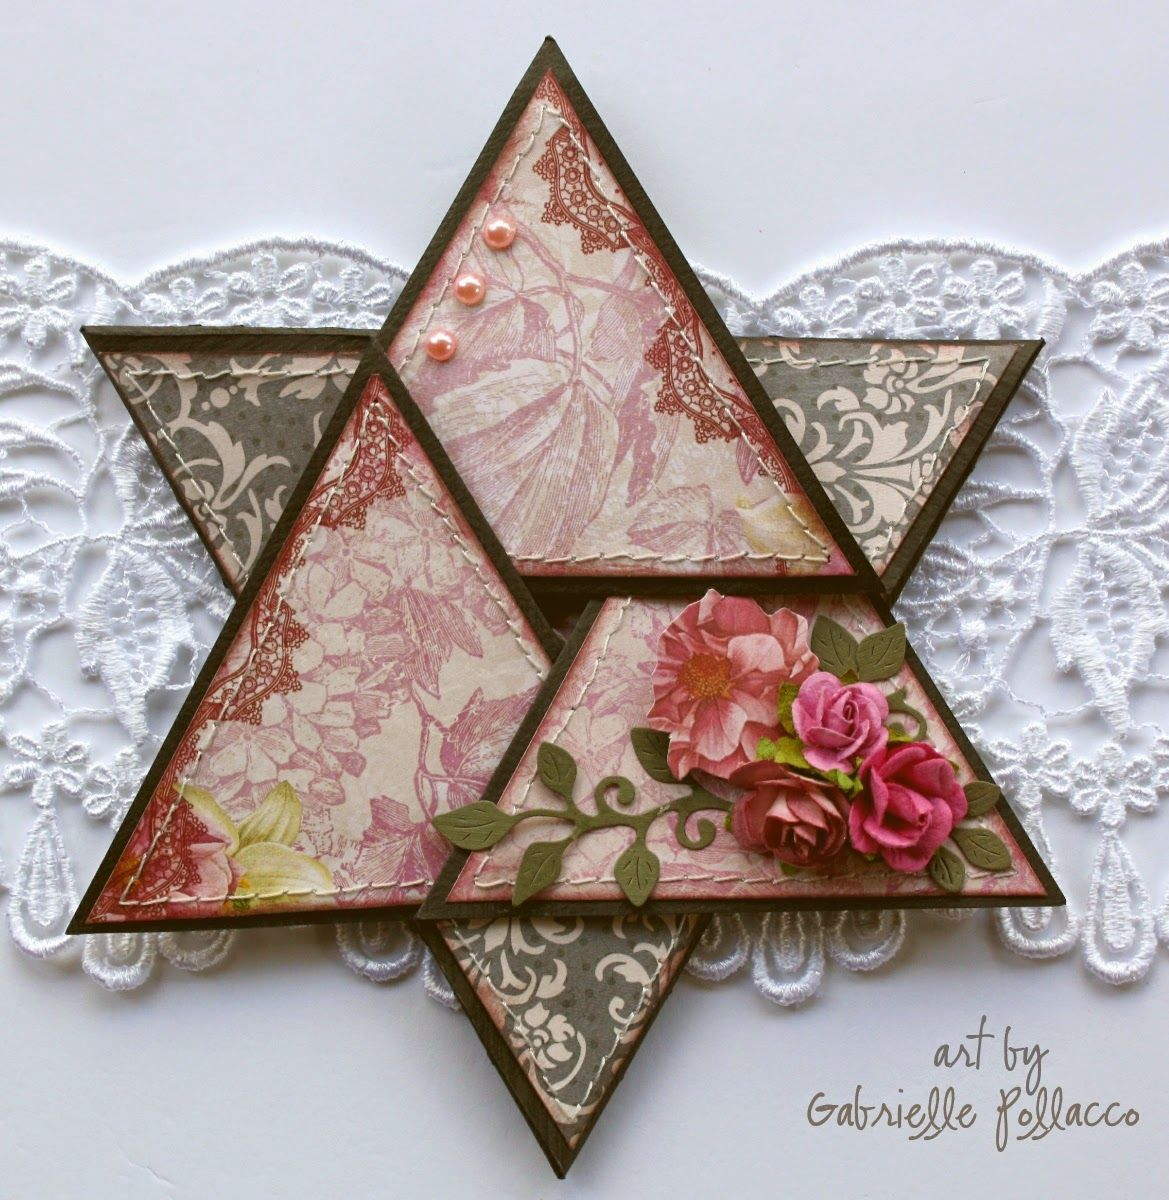 star fold card by gabrielle pollacco     tutorial and template with complete instruction in her